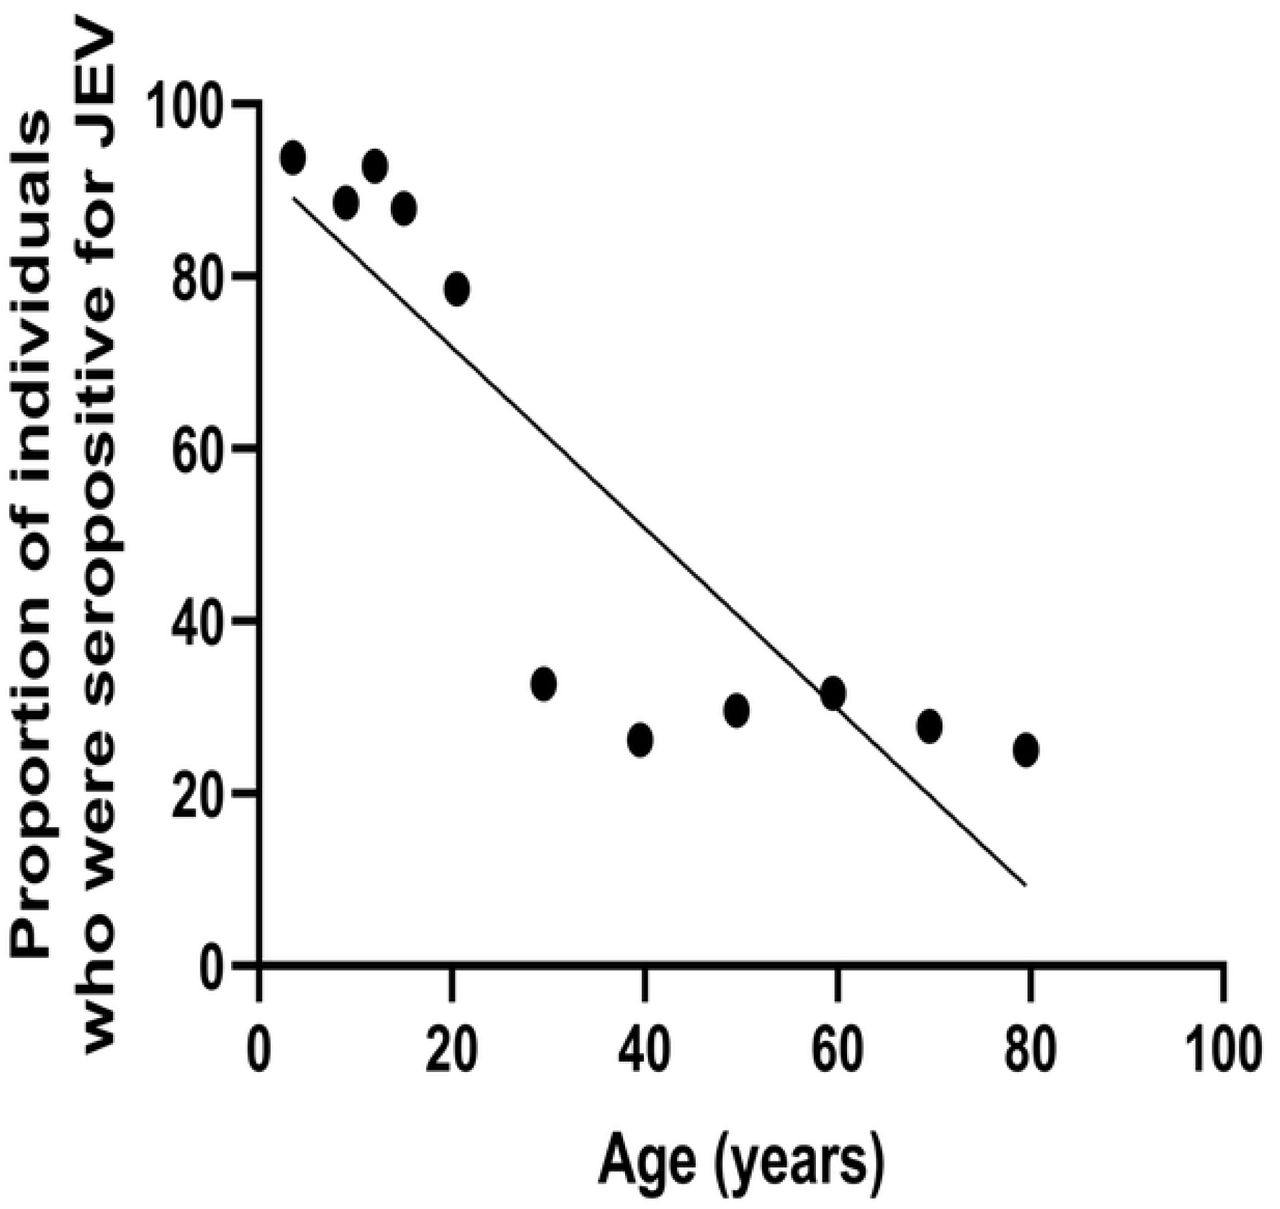 Age stratified seroprevalence of JE-specific antibodies JEV-specific antibodies were measured using the in-house ELISA in 520 healthy individuals. JEV-specific antibody seropositivity significantly decreased with age (Spearmans' R=-0.85, p=0.003).